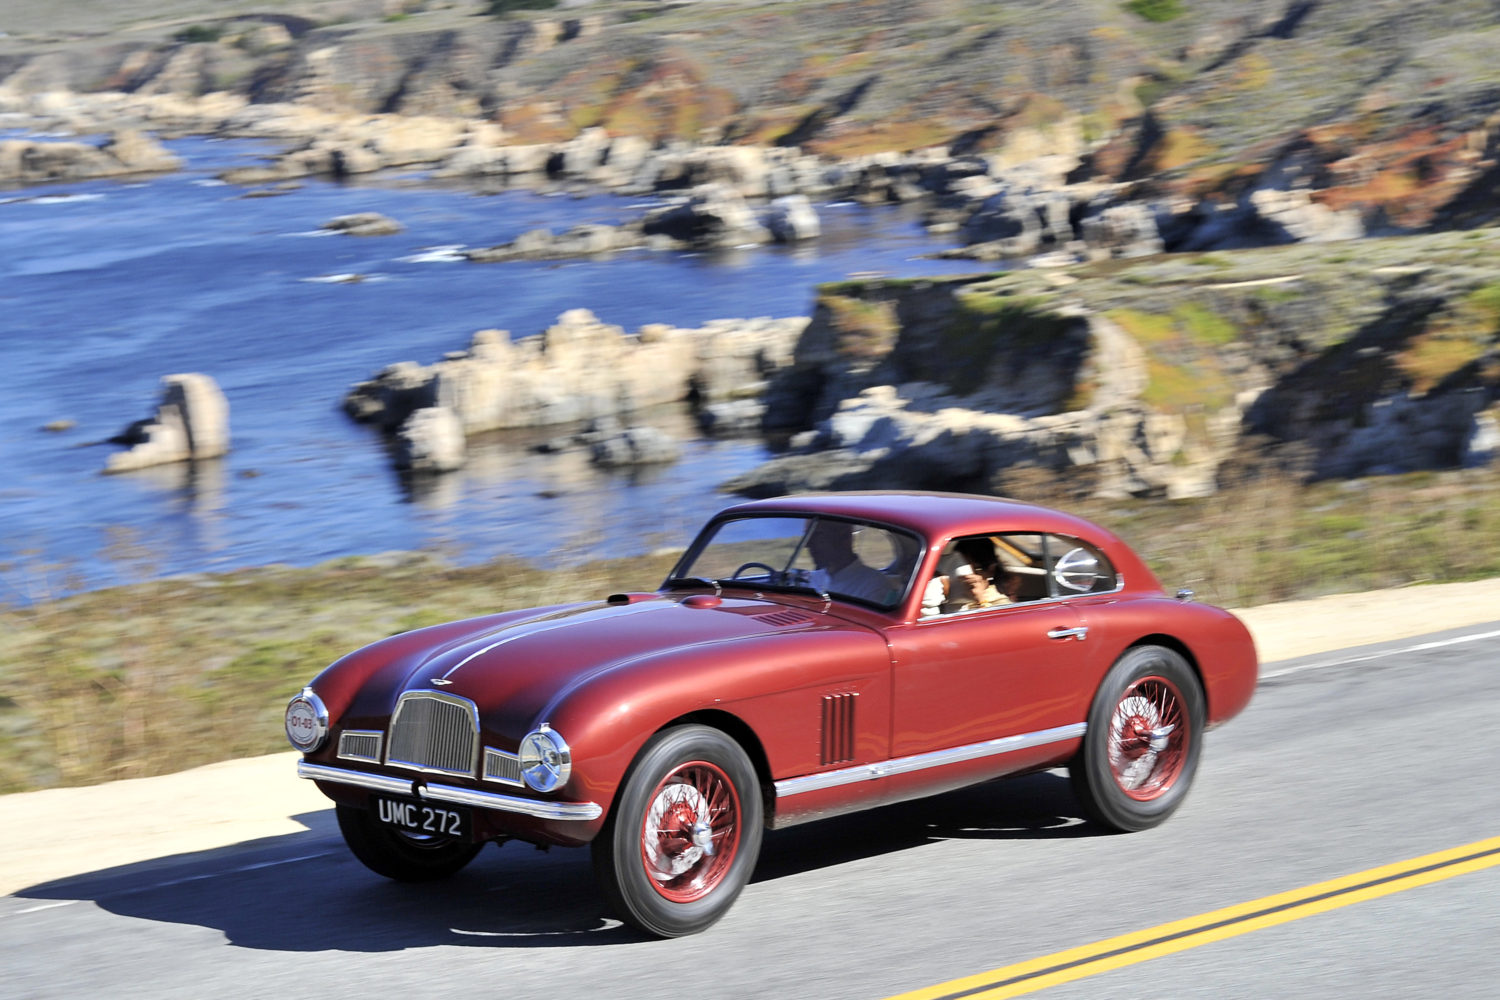 Car of the Week #8: Aston Martin DB2 Prototype